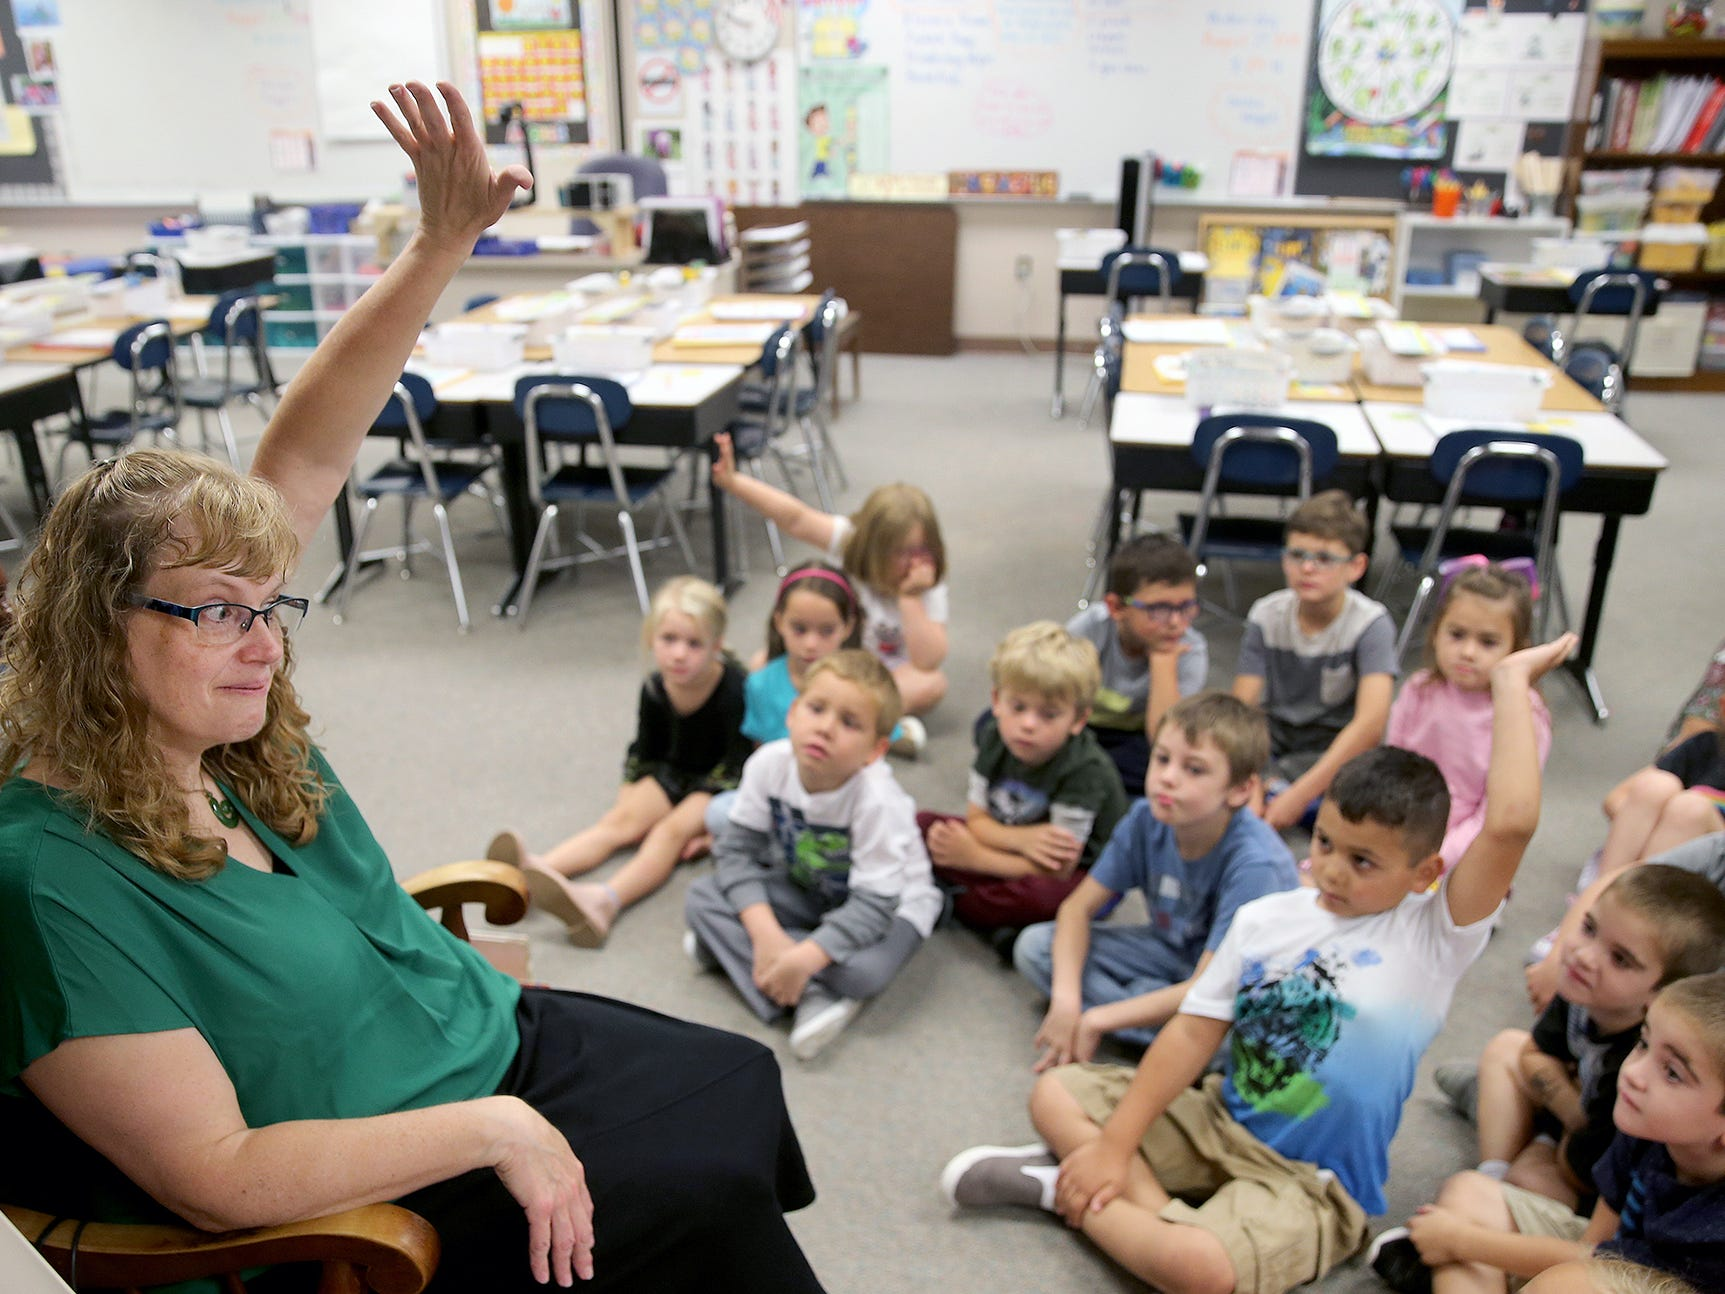 First grade teacher Becky Montgomery encourages students to raise their hands for questions during the first day of classes at Kitsap Lake Elementary School on Wednesday, August 29, 2018.